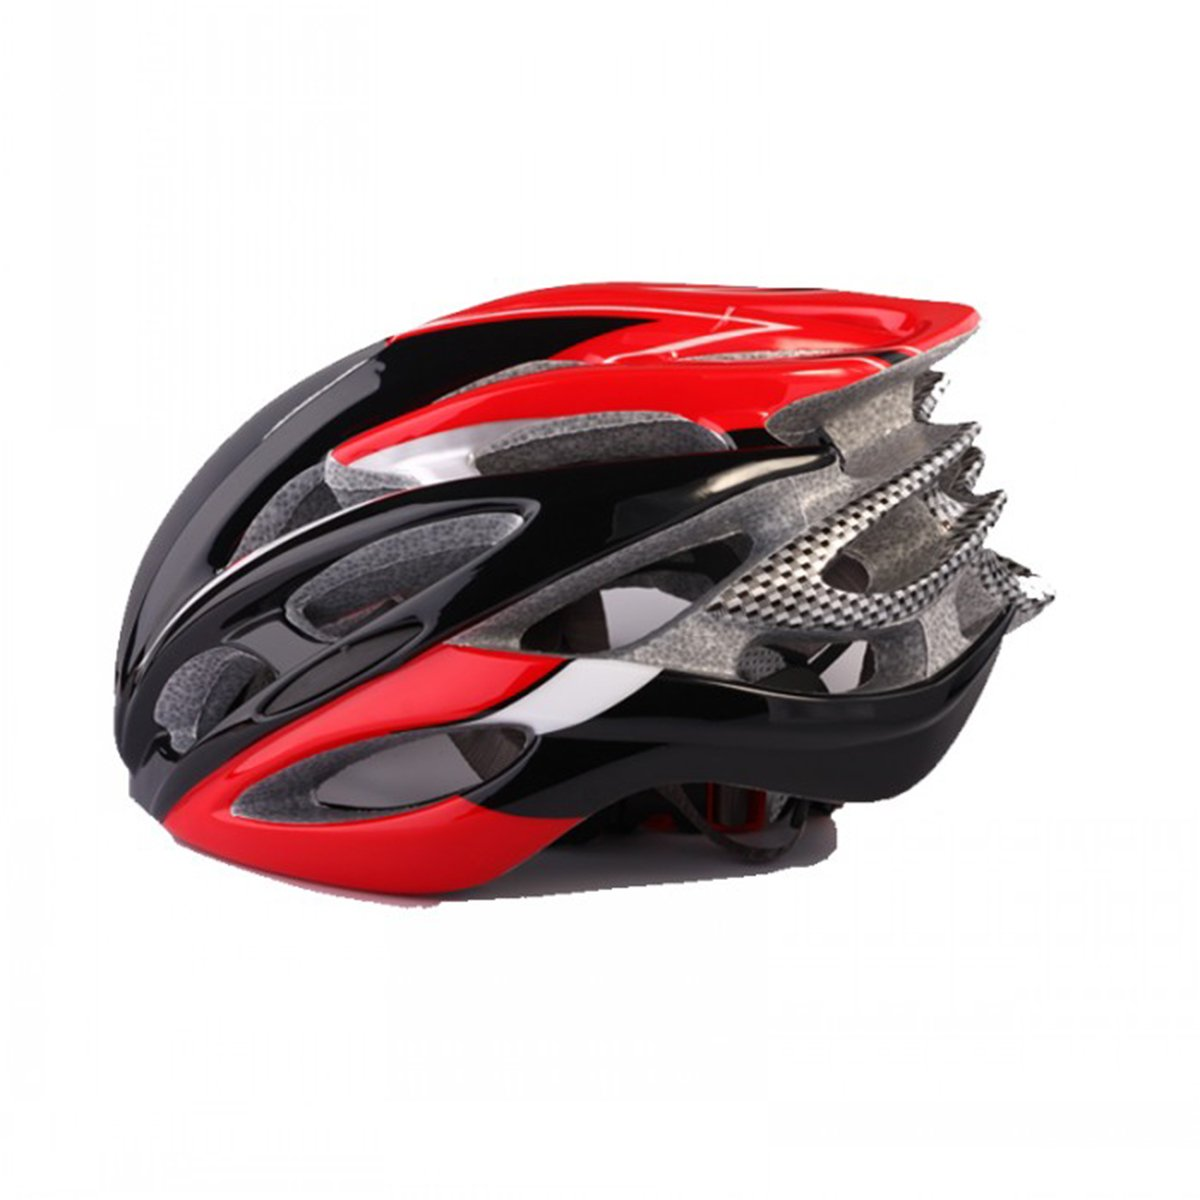 Paladin Unisex Road/Mountain Bike Ultralight Helmet Bicycle Adult Safety Helmet